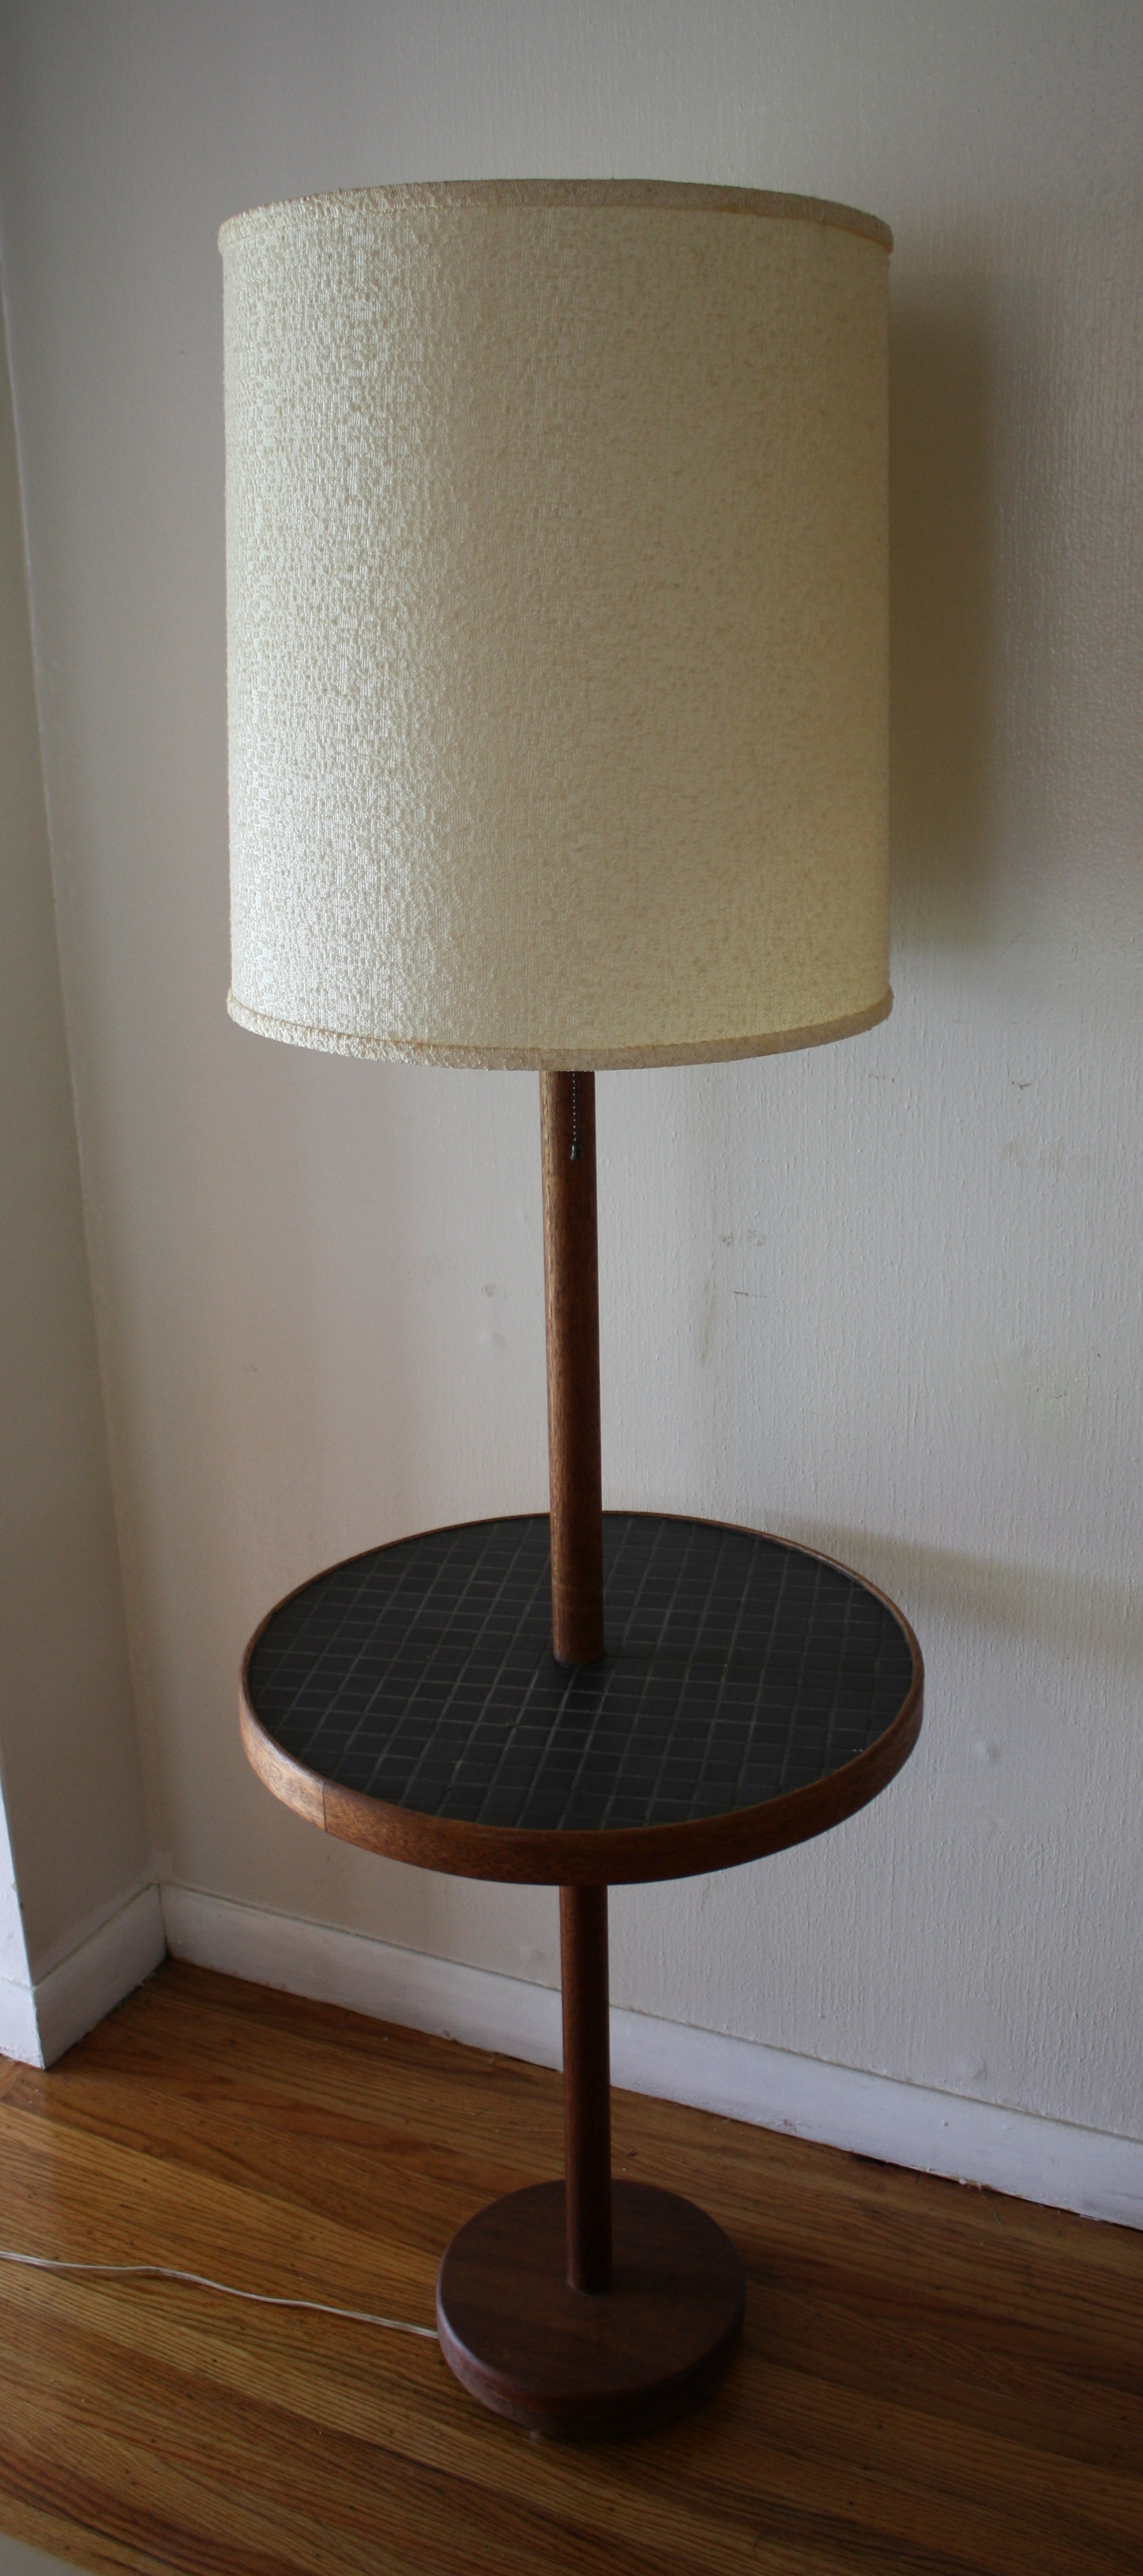 Mid Century Modern Floor Lamps with Tile Top Tables